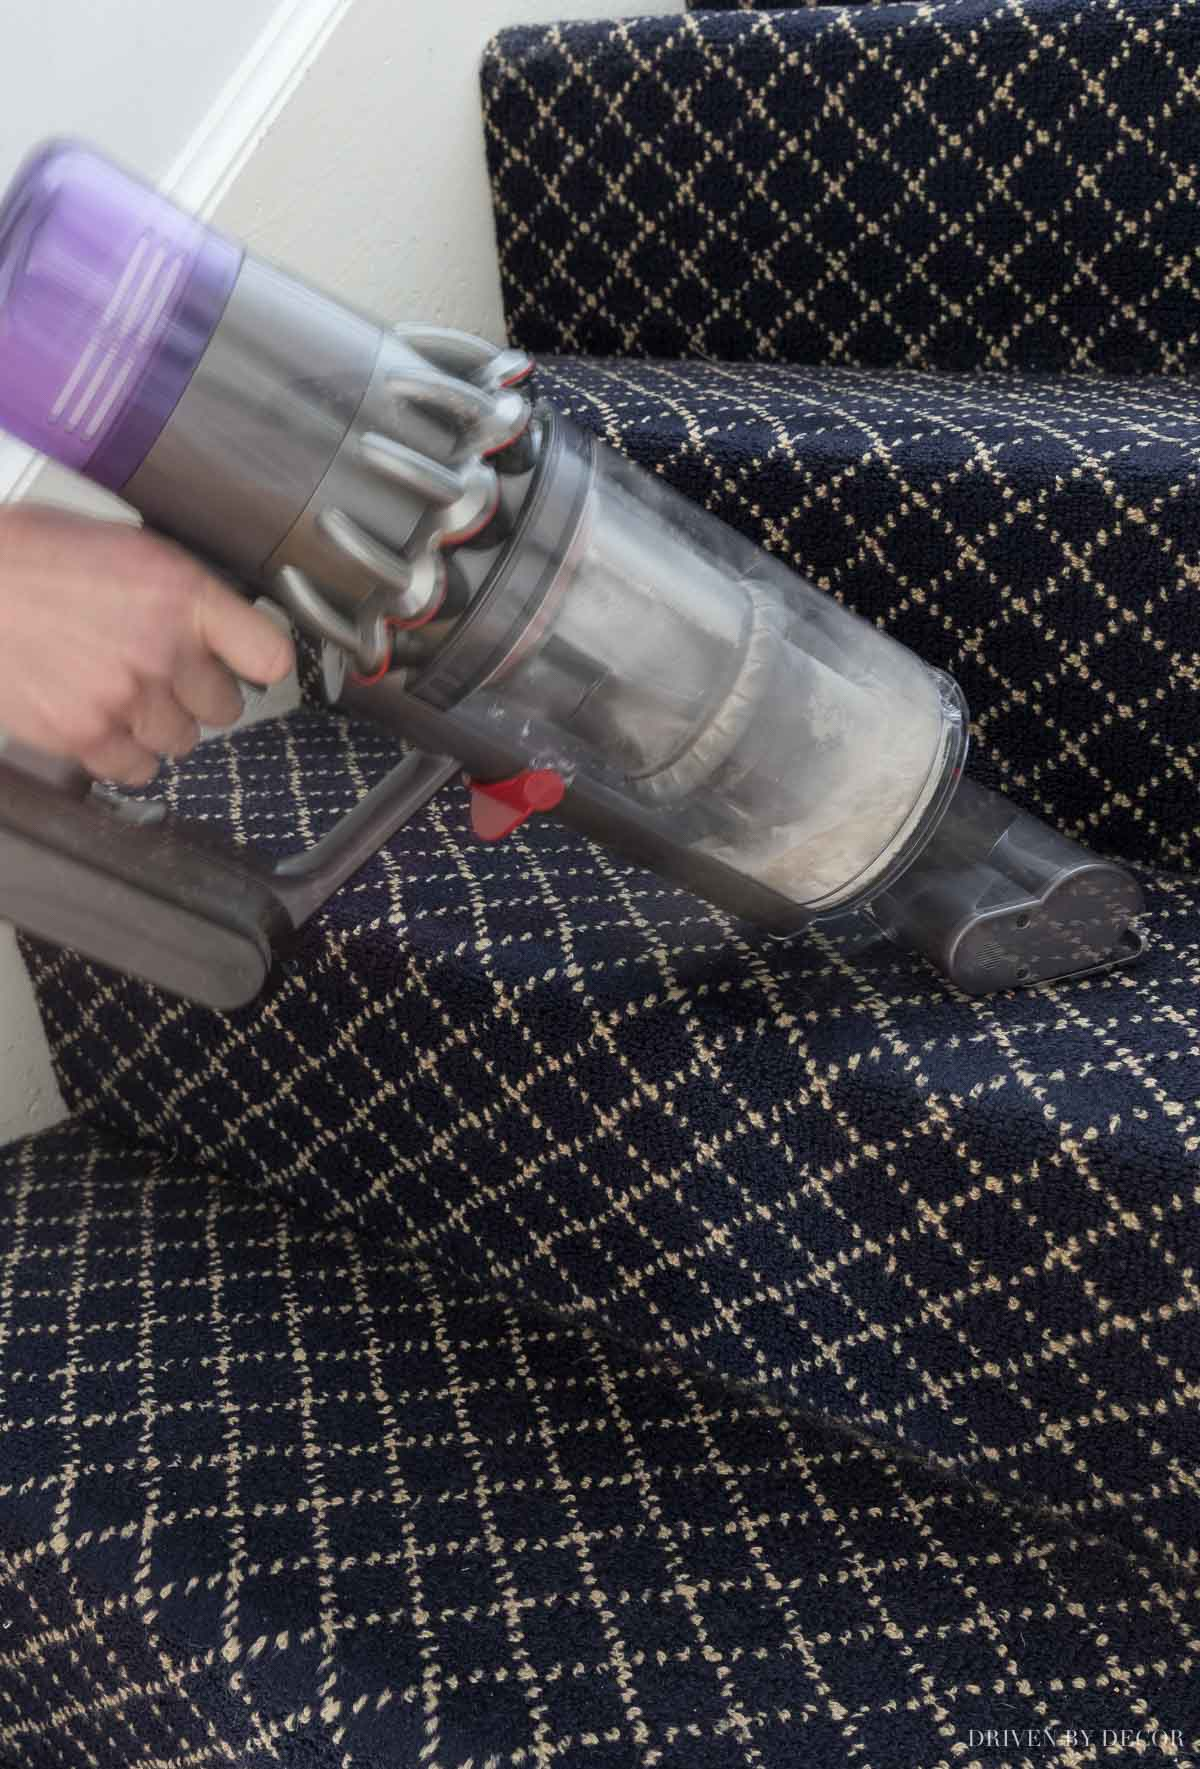 Absolutely love using my Dyson cordless handvac with this attachment for cleaning stairs!